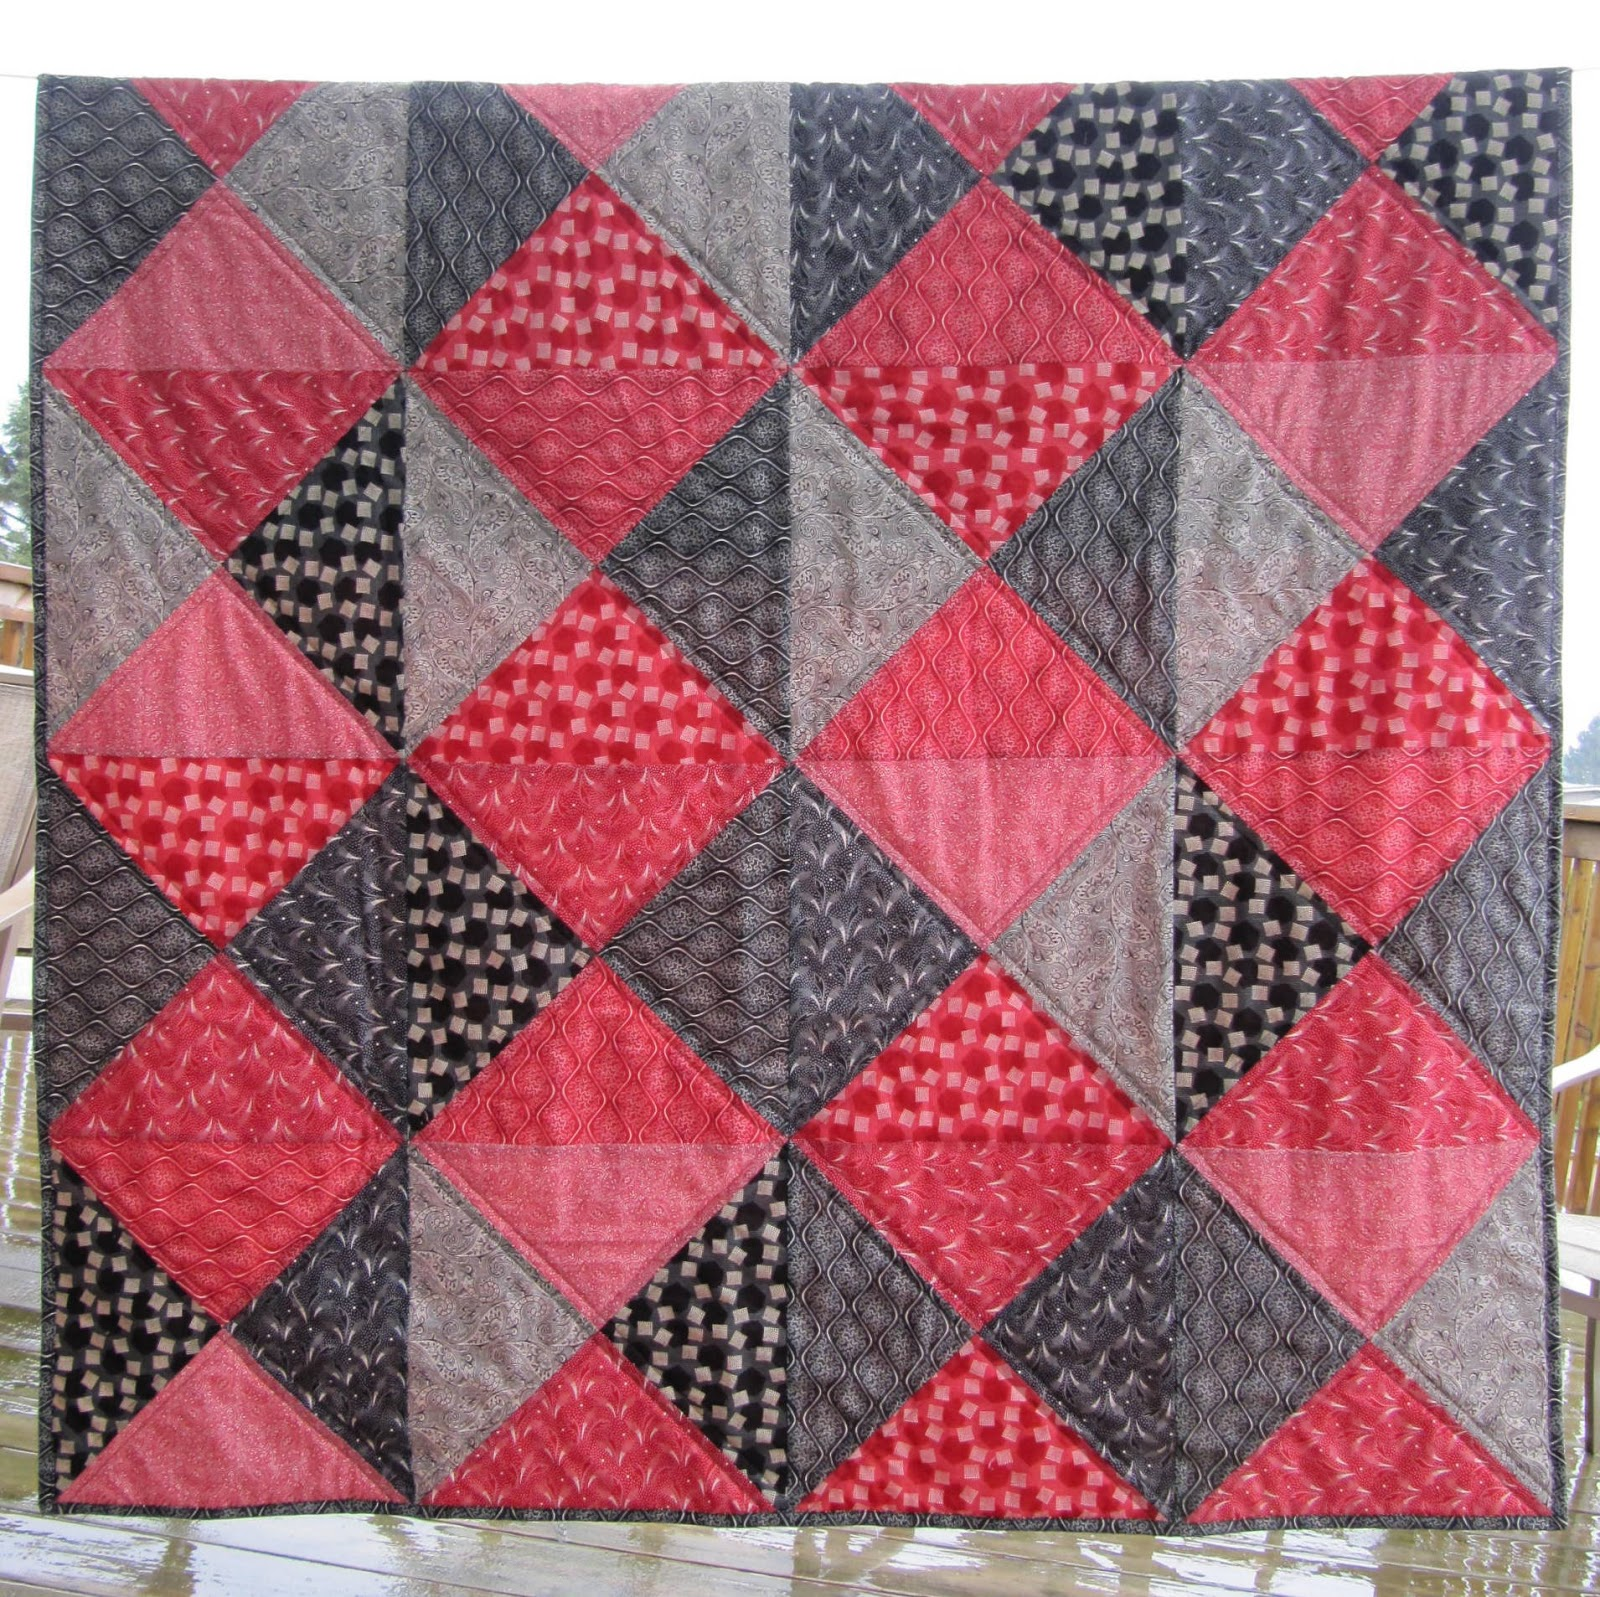 Quilt Patterns With 3 Fabrics : Inspired by Fabric: Tutorial: Two-Color Quilt